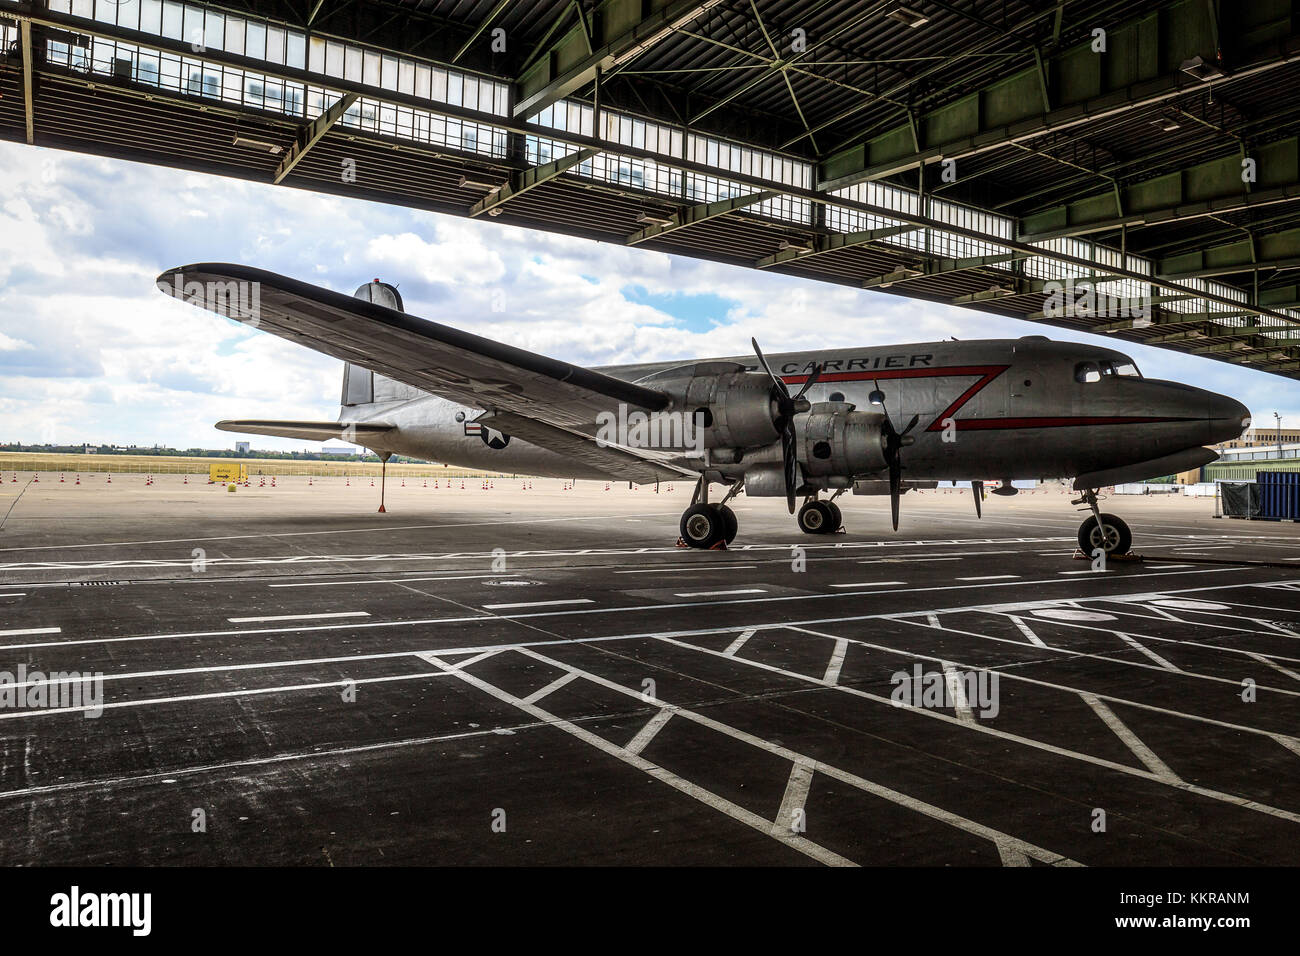 These airplanes were used at the Berlin Blockade. The Berlin Blockade (24 June 1948 - 12 May 1949) was one of the - Stock Image